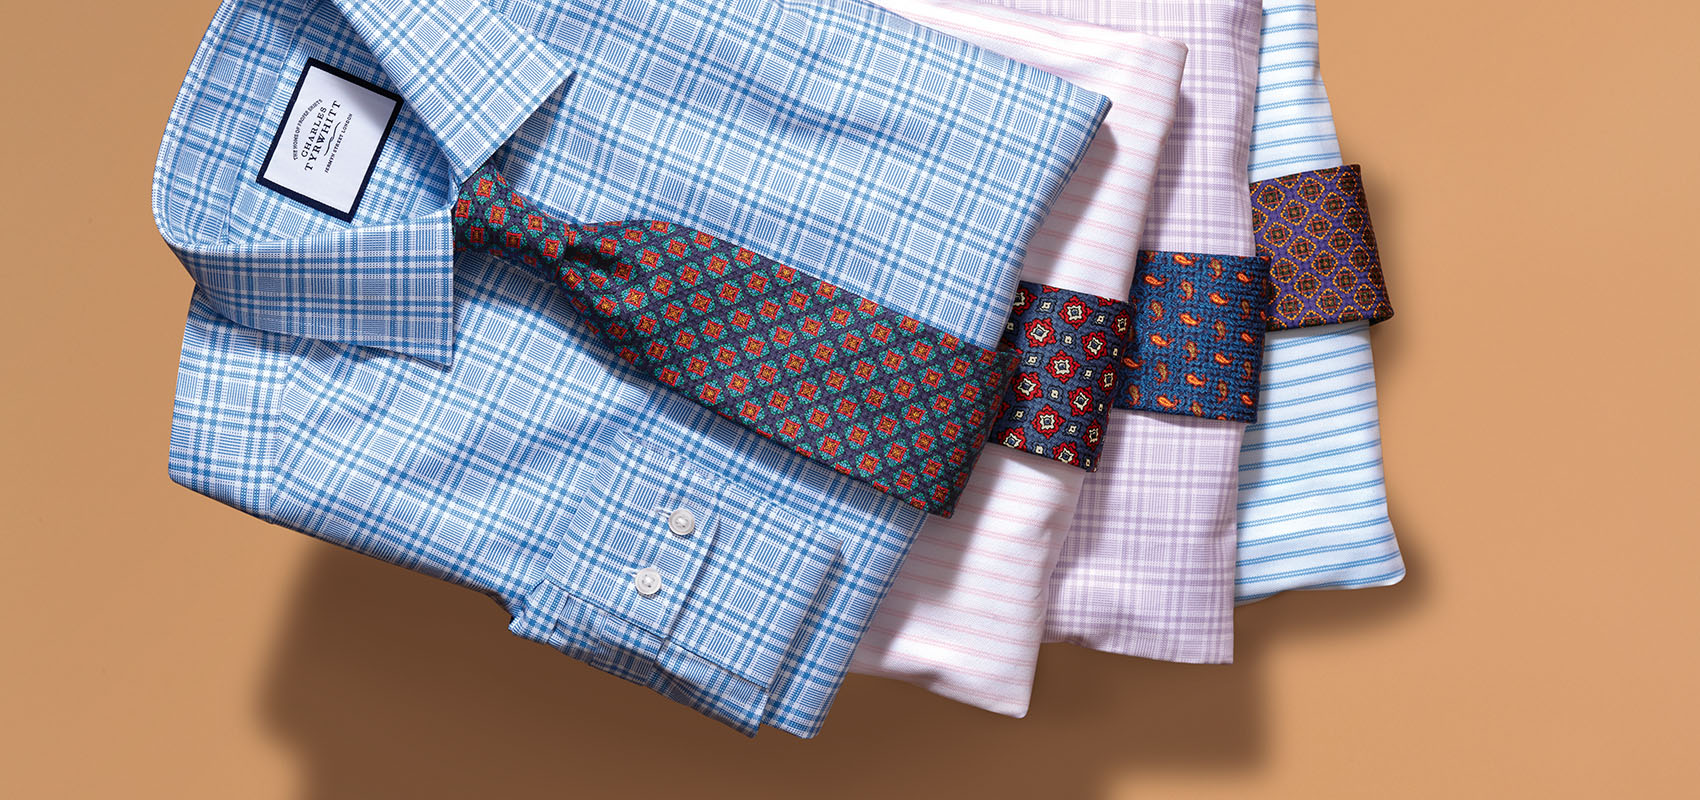 Charles Tyrwhitt Luxury English Ties